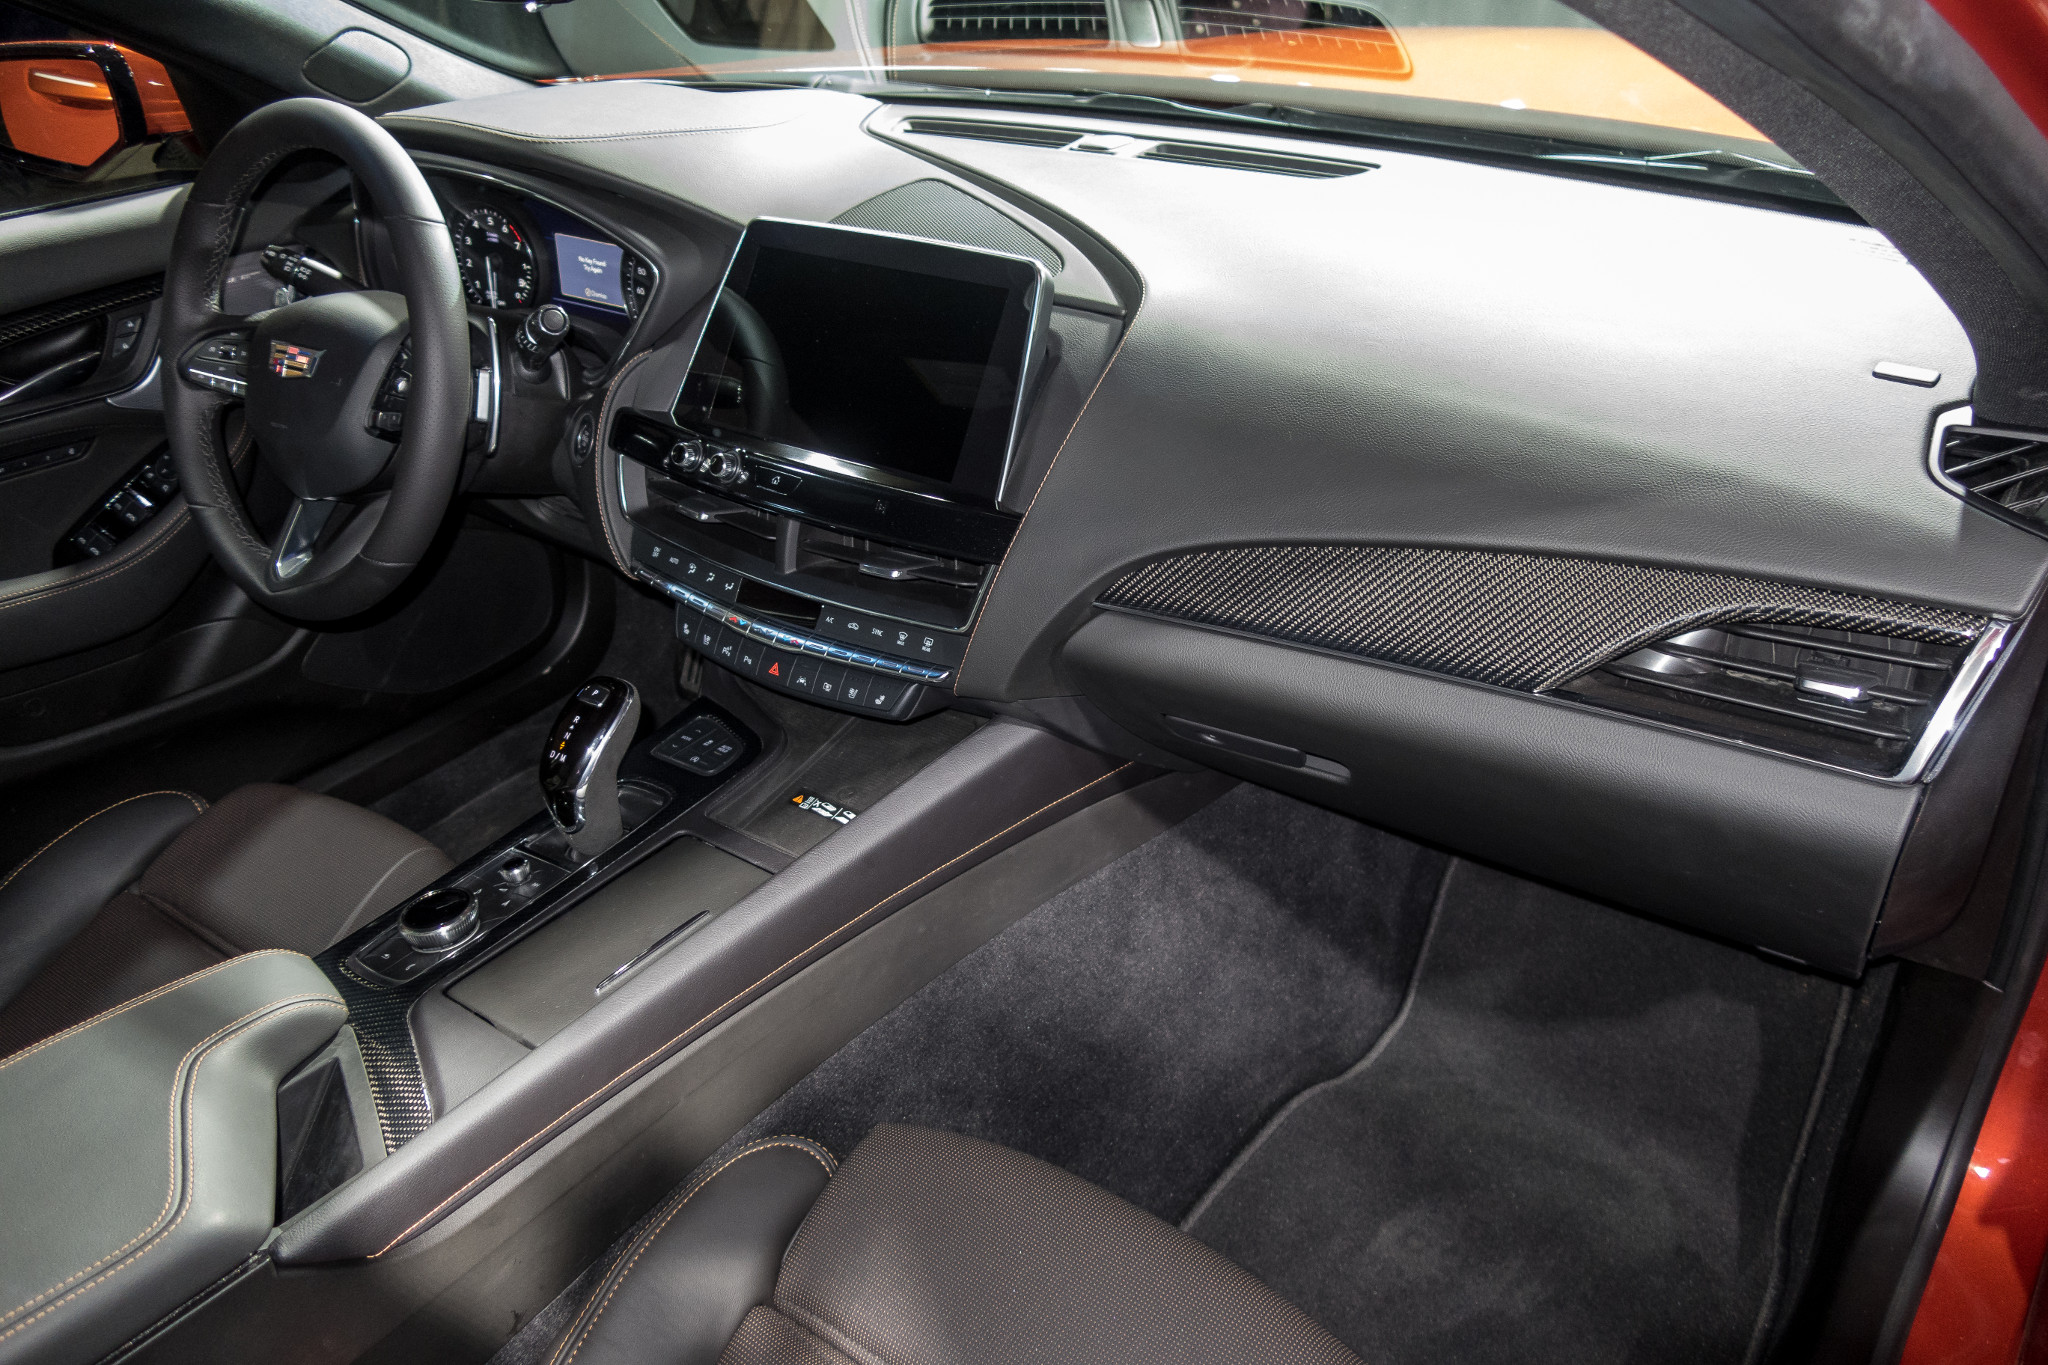 car pictures review: 2020 cadillac ct5 v interior